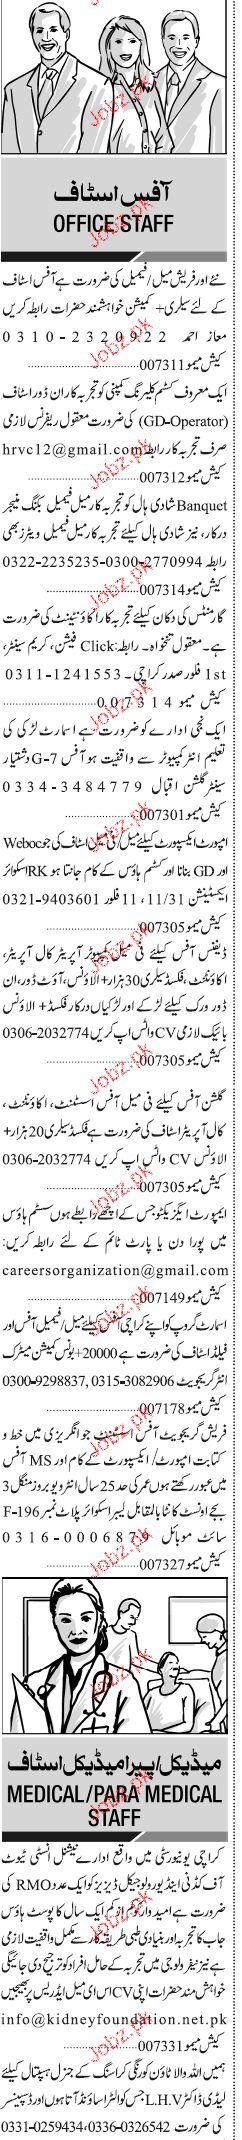 GD Operators, Booking Managers, Accountant Job Opportunity